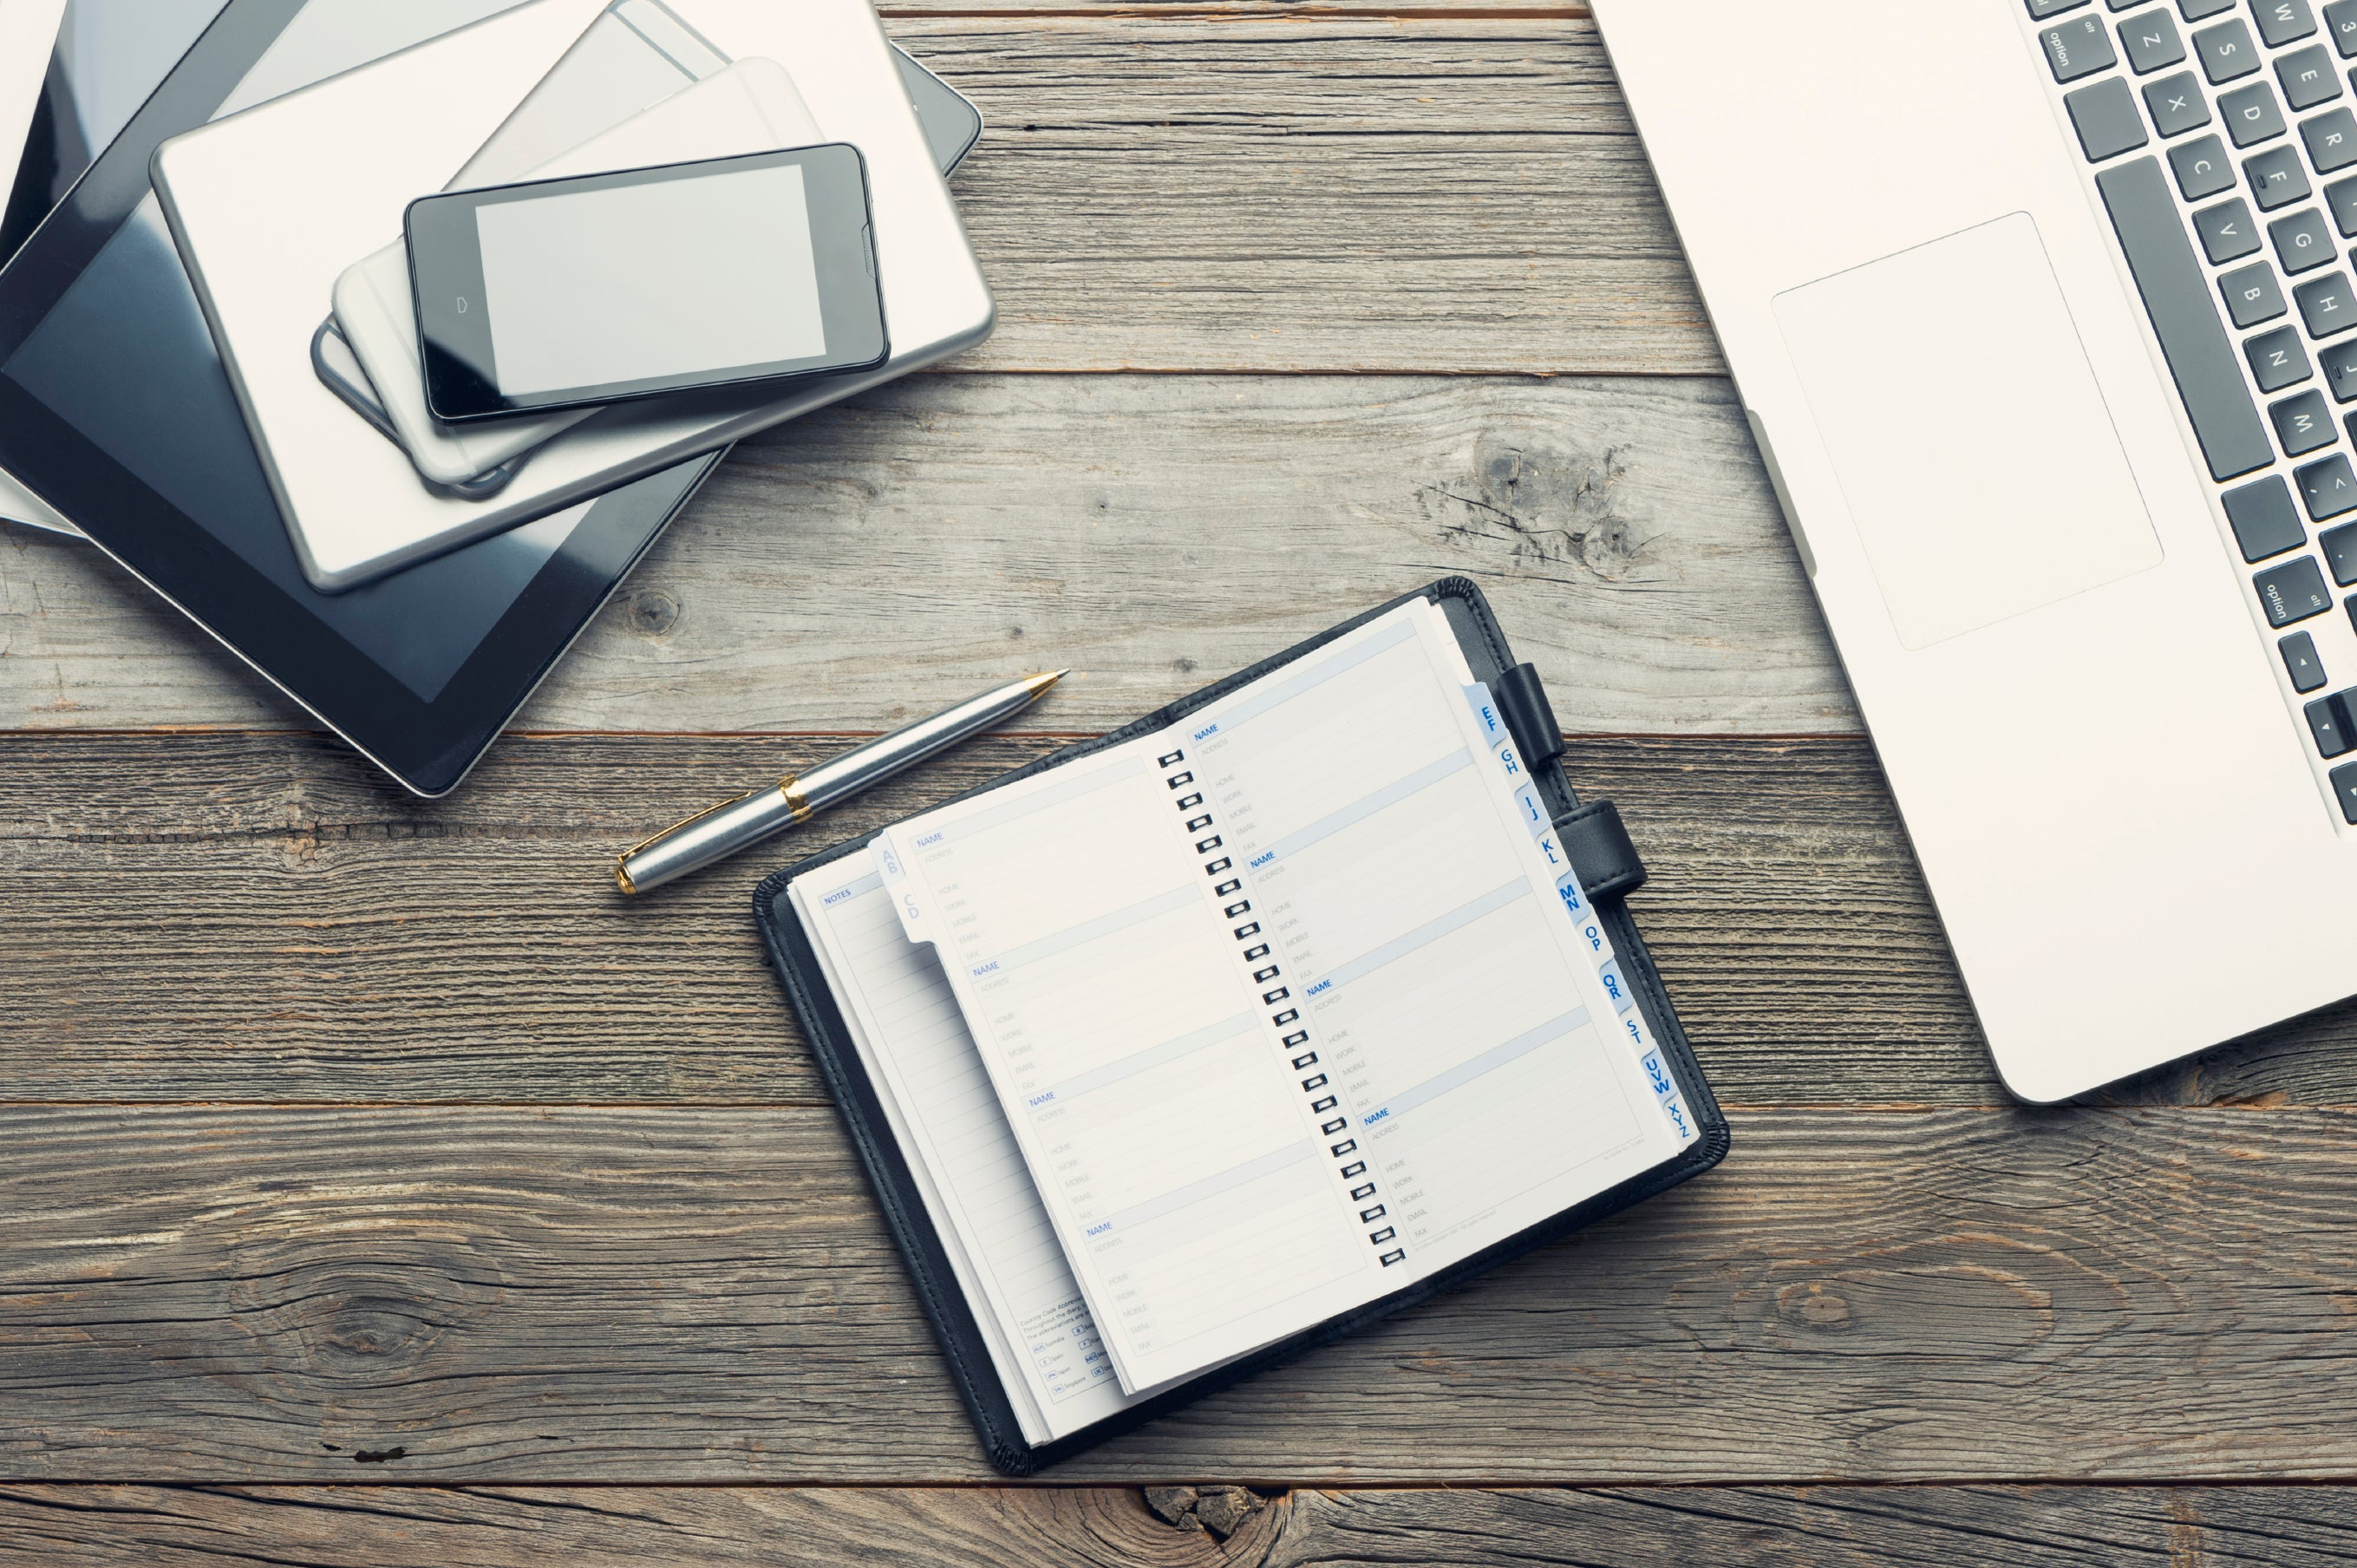 Tips to Become More Productive